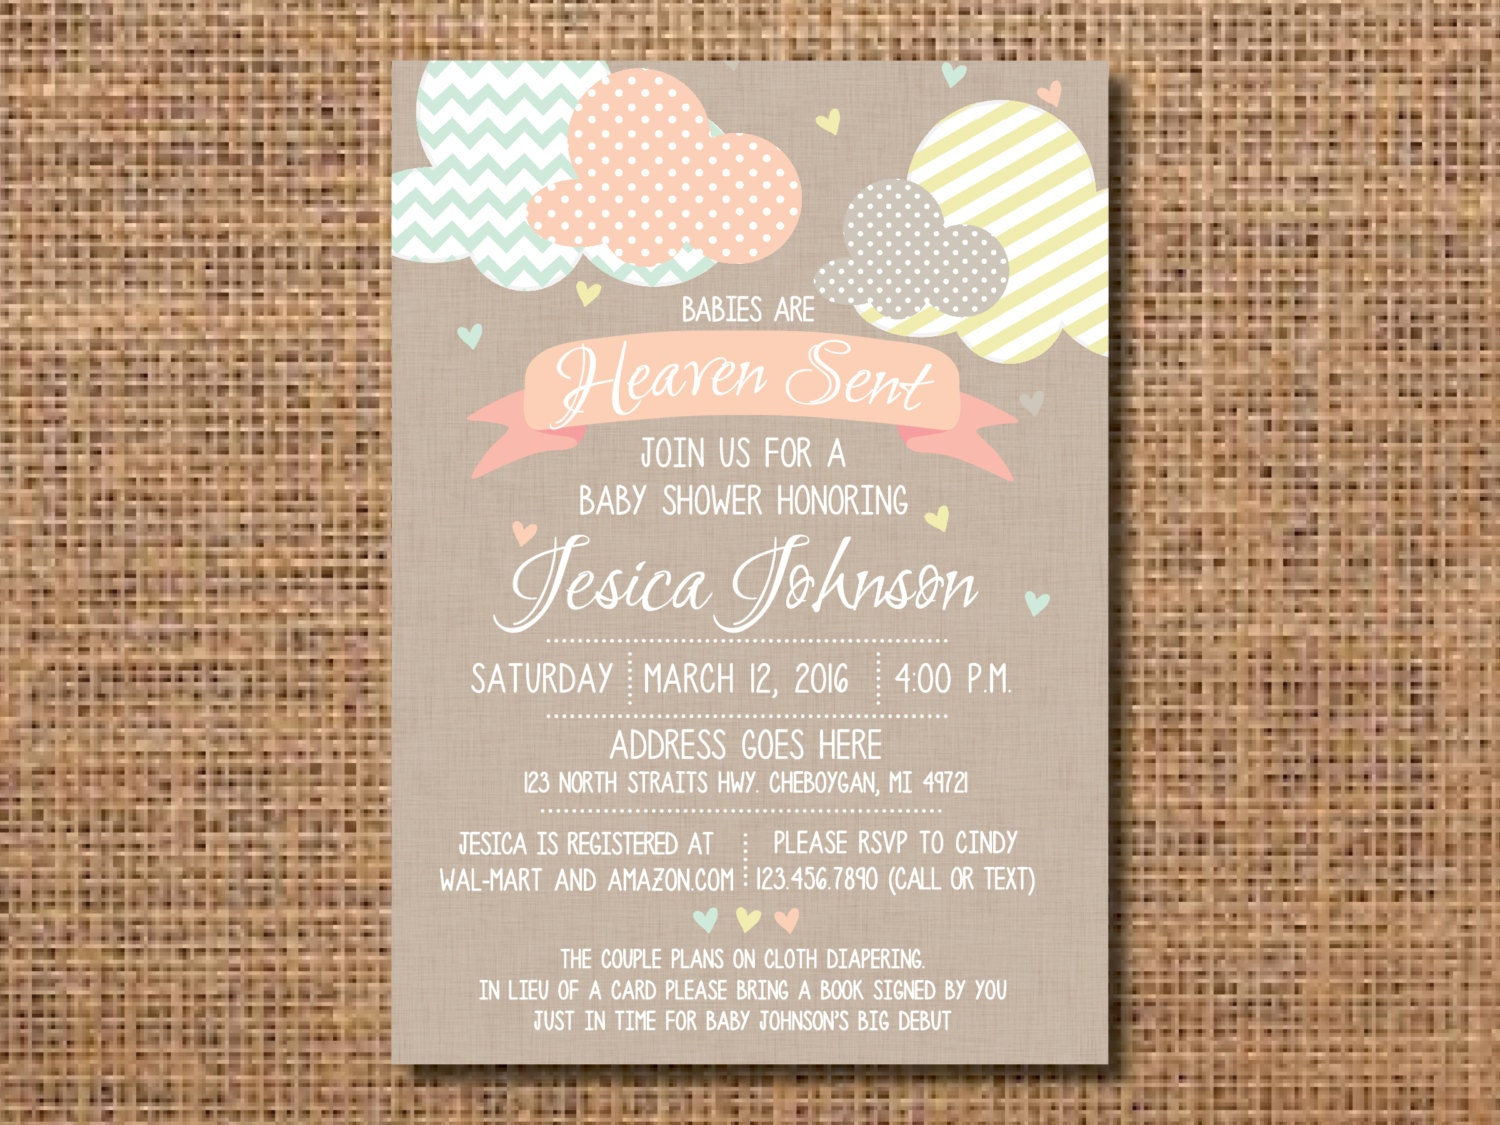 Heaven sent baby shower invitation gender neutral baby zoom filmwisefo Image collections